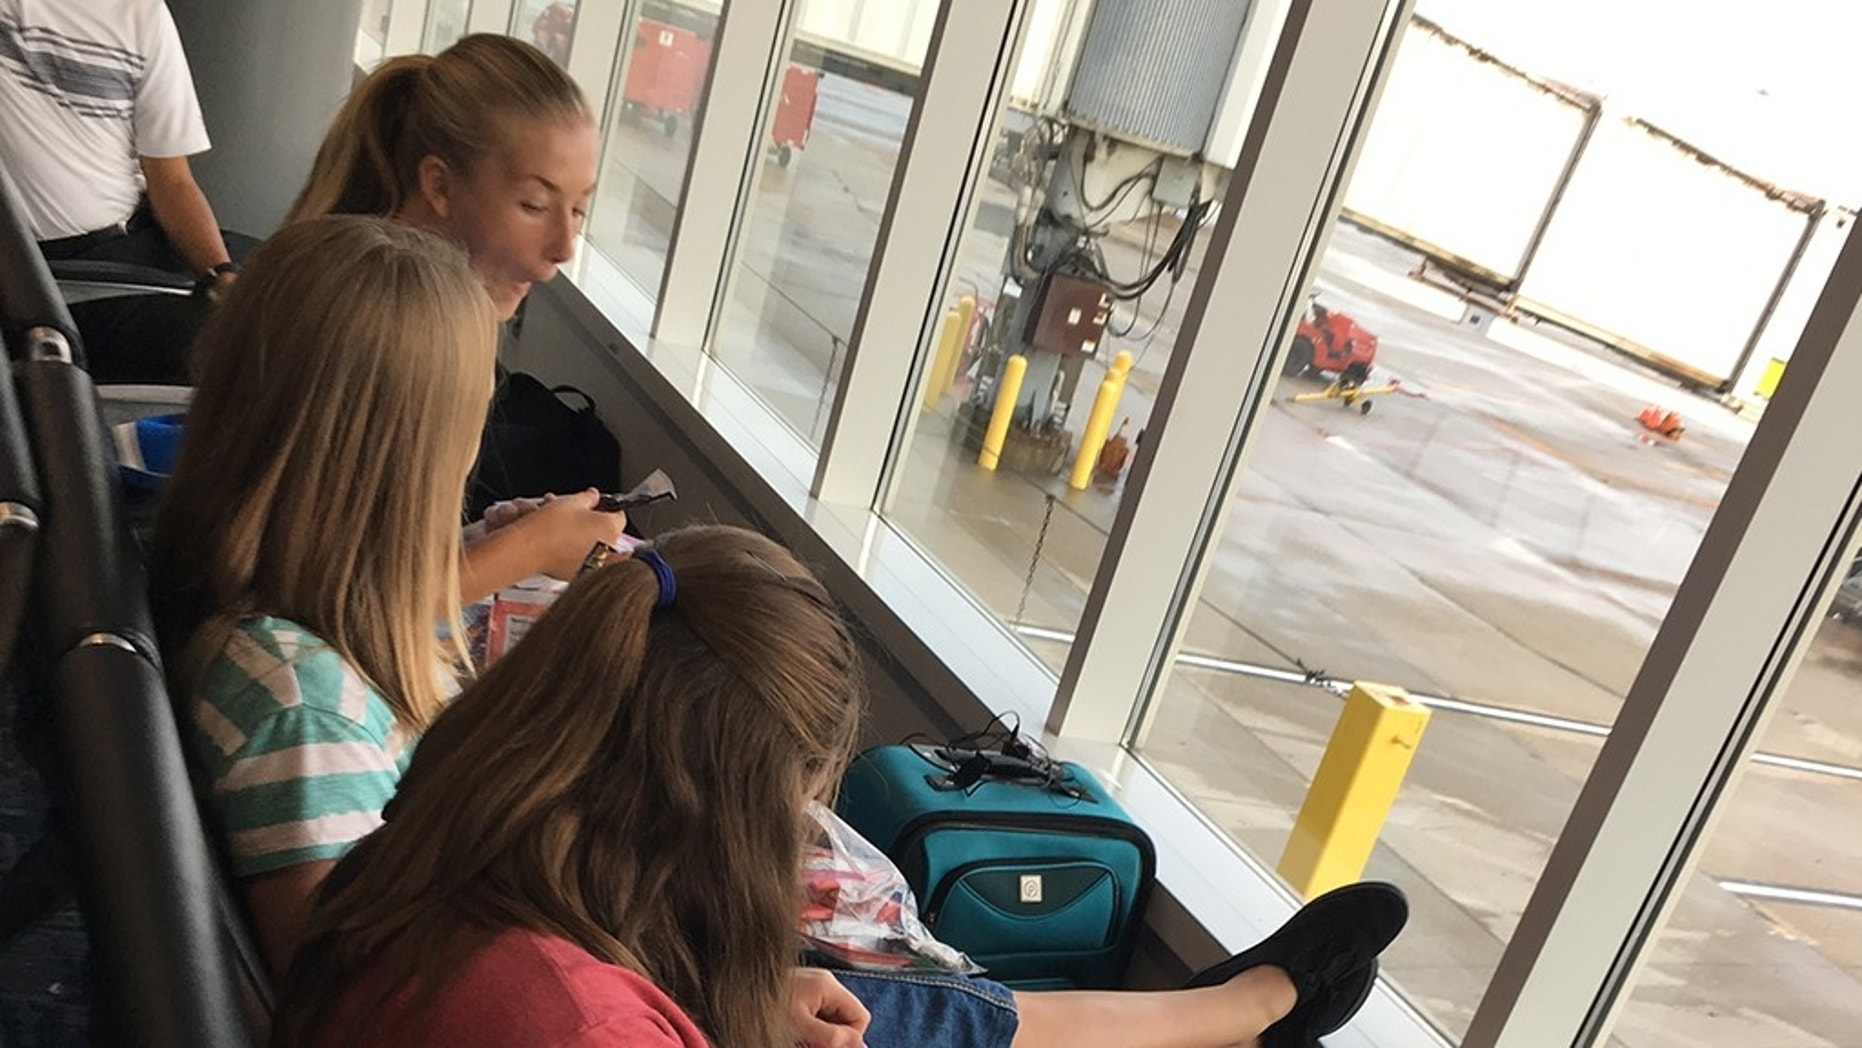 Kentucky Youth Group Kept off American Airlines Flight over Check-In Delay